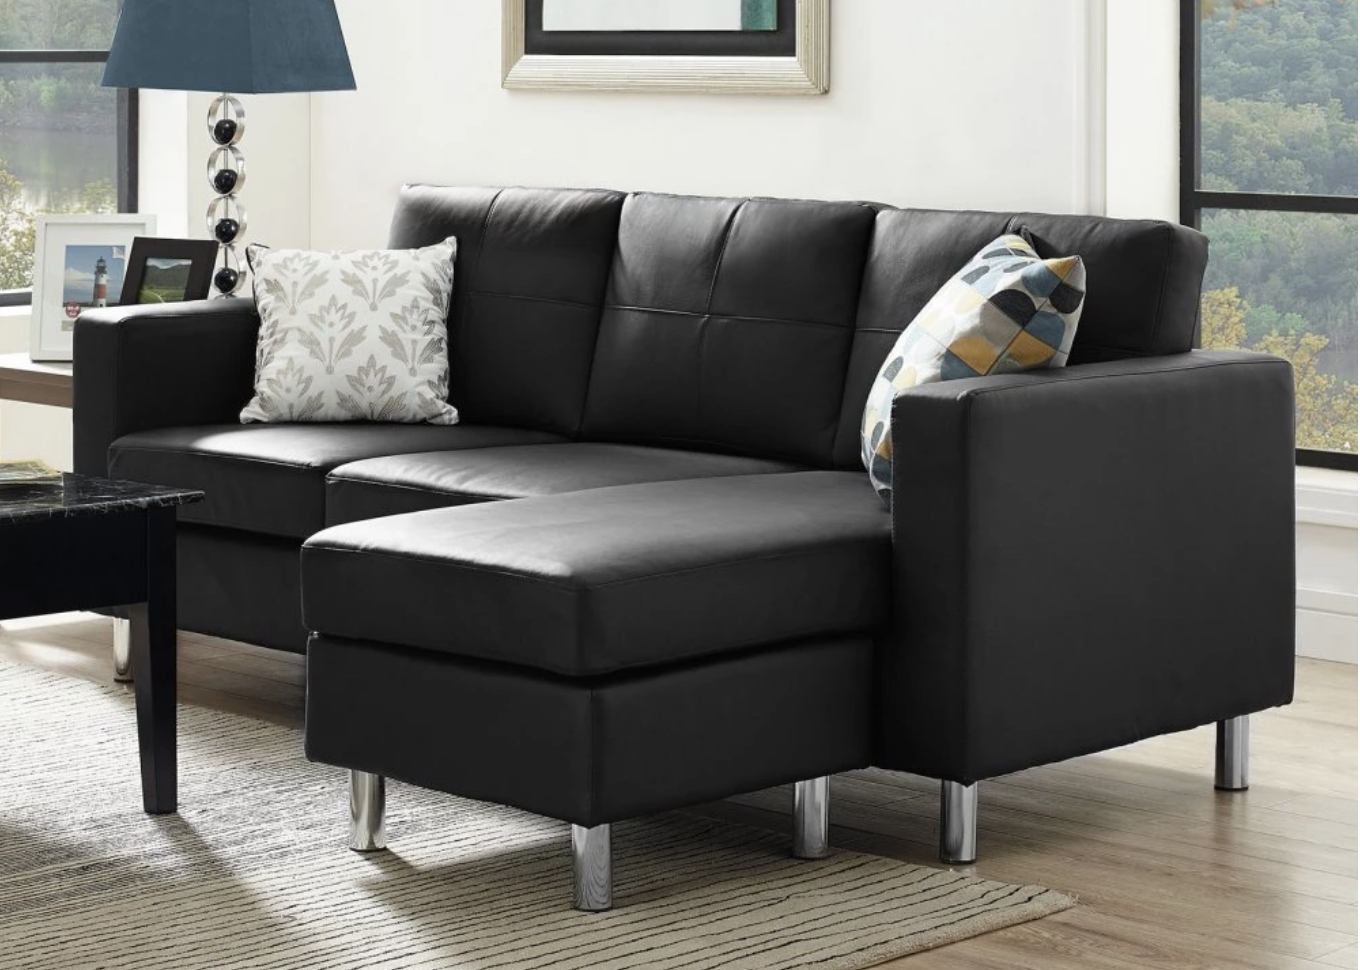 Preferred Sectional Sofas For Small Areas Regarding 75 Modern Sectional Sofas For Small Spaces (2018) (View 4 of 15)